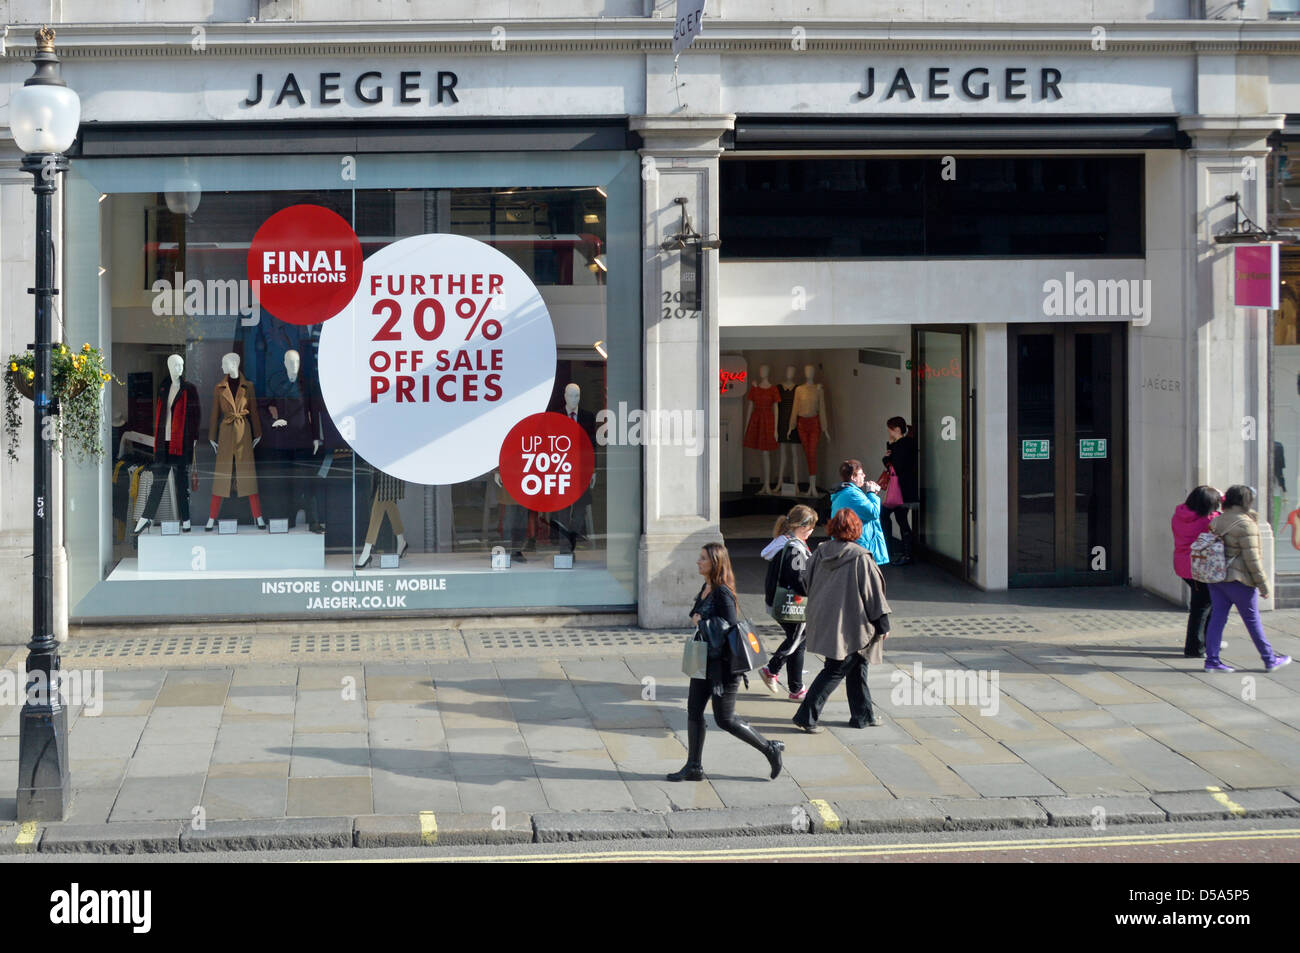 Möbel Jäger Online Shop Regent Street Fashion Store Jaeger Shop Front Window With